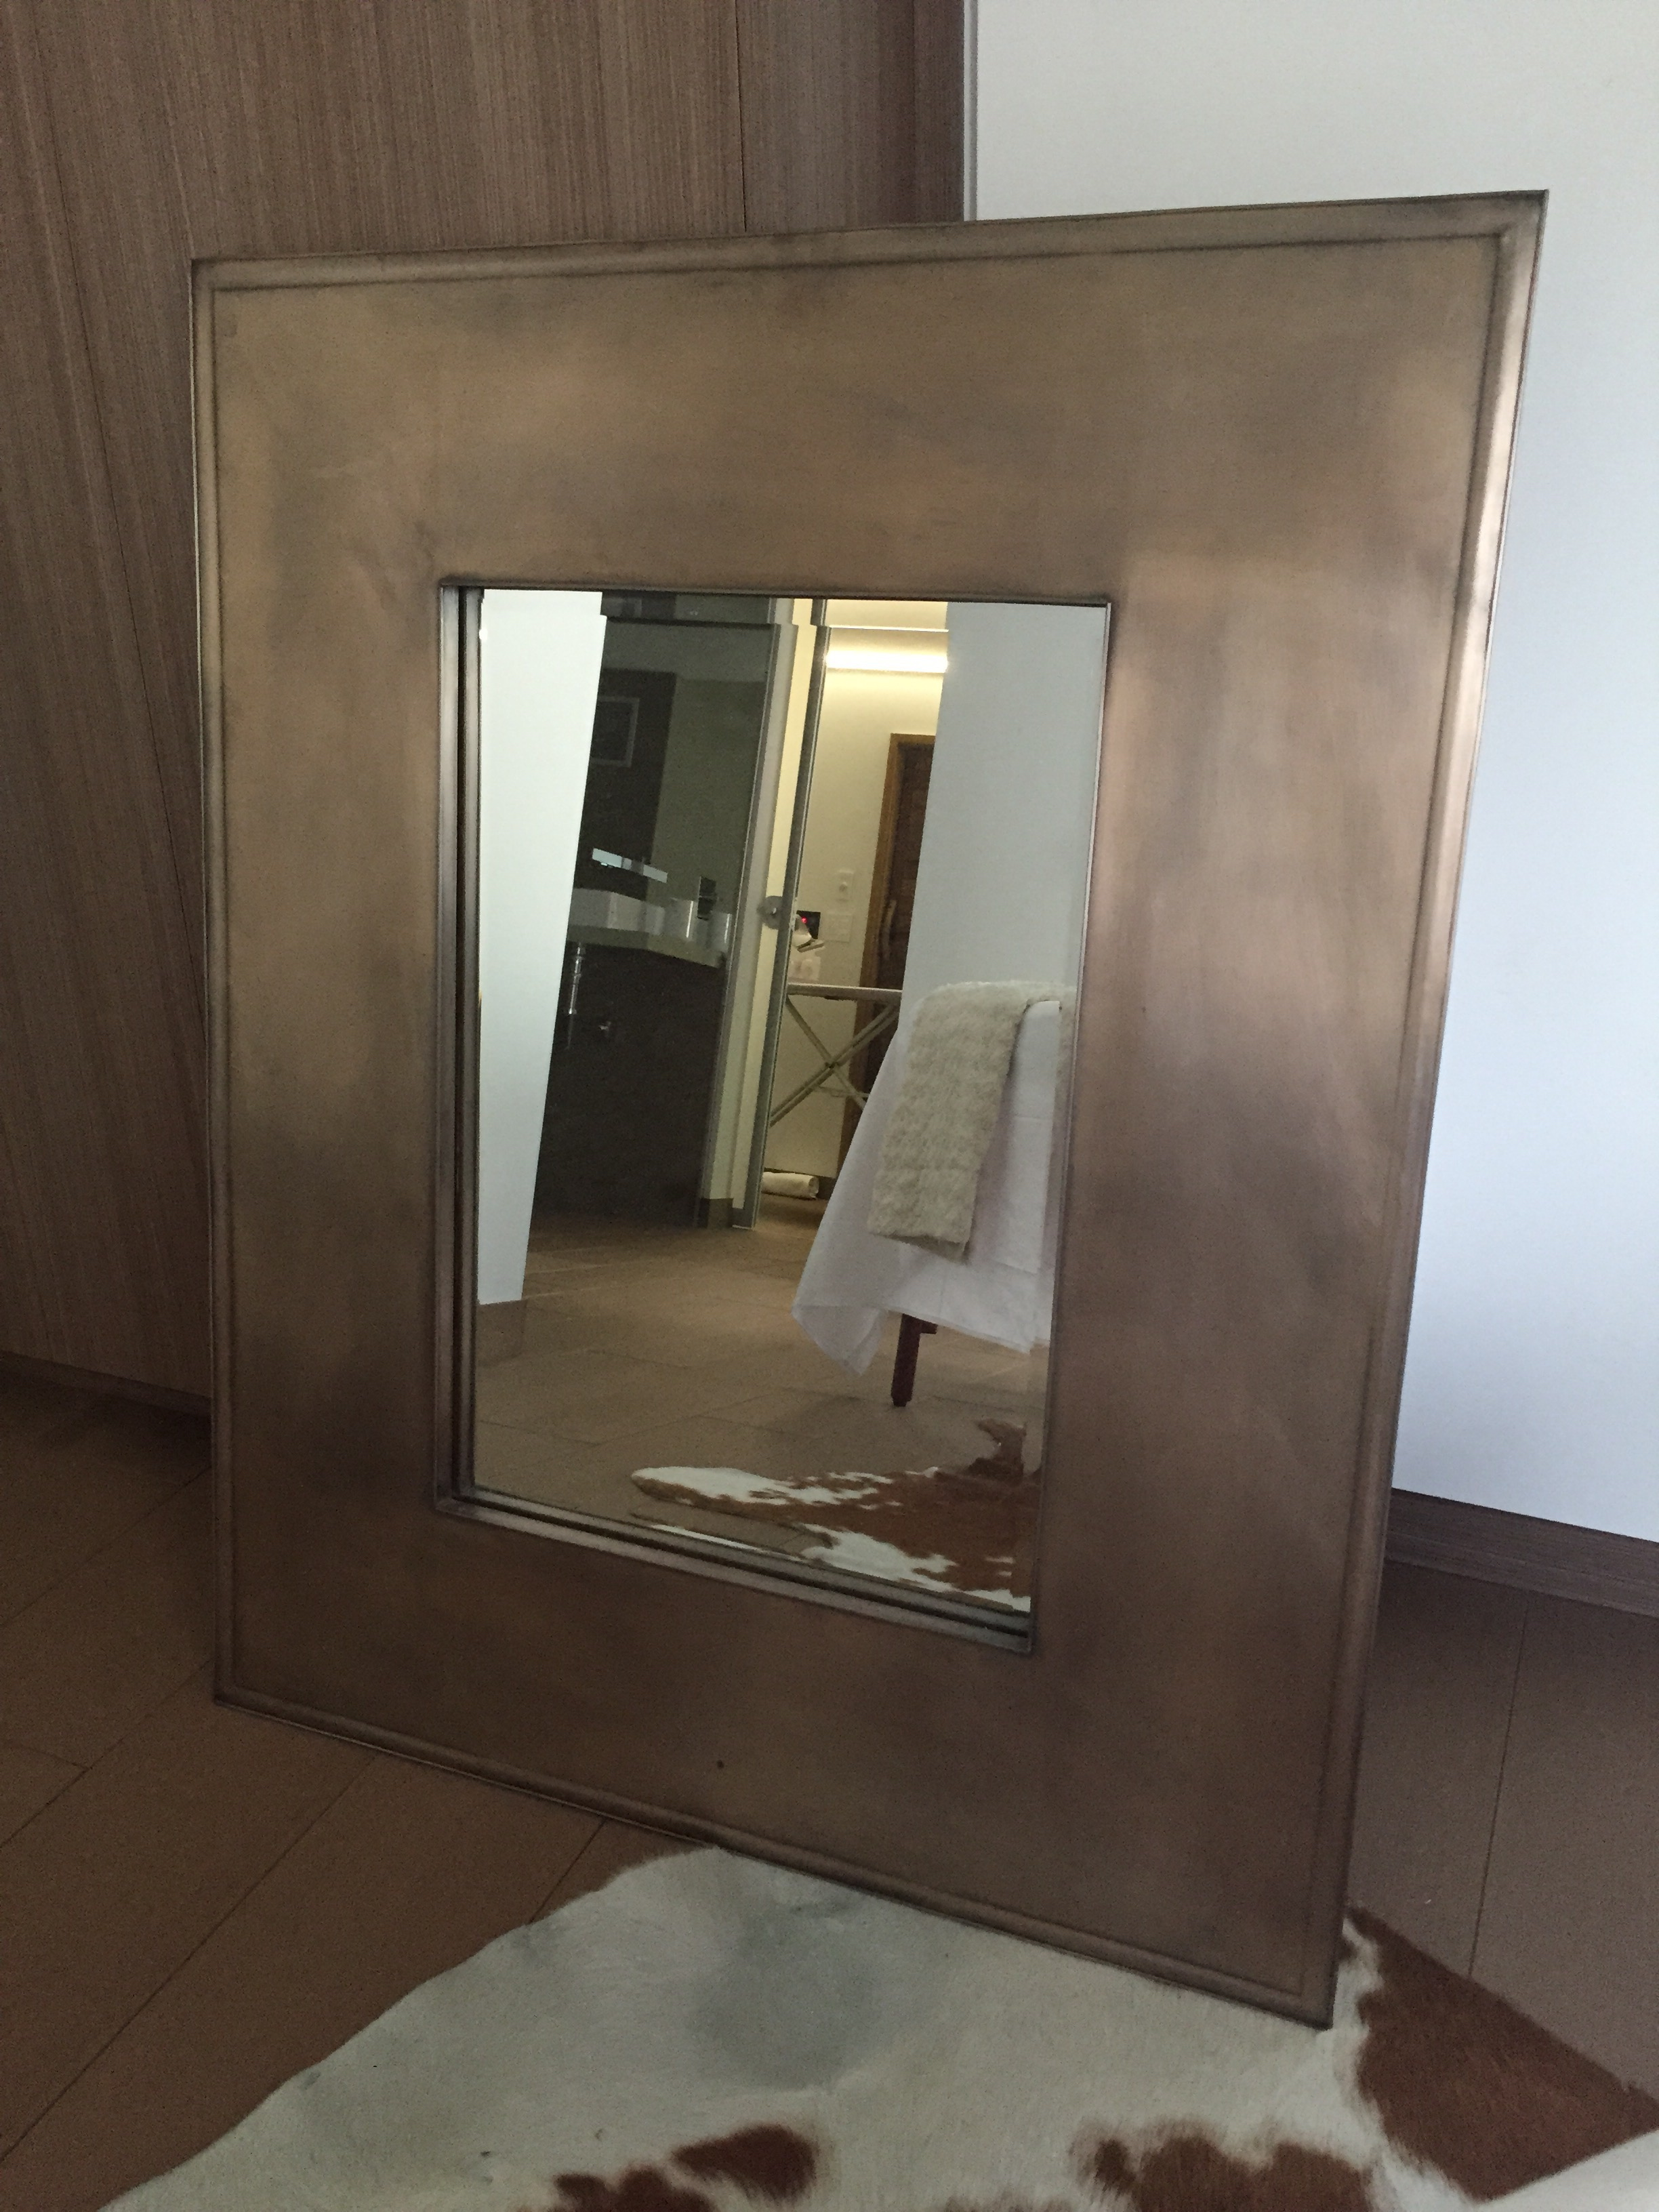 Crate and Barrel Mirrors | Silver Round Wall Mirror | Modern Full Length Mirror